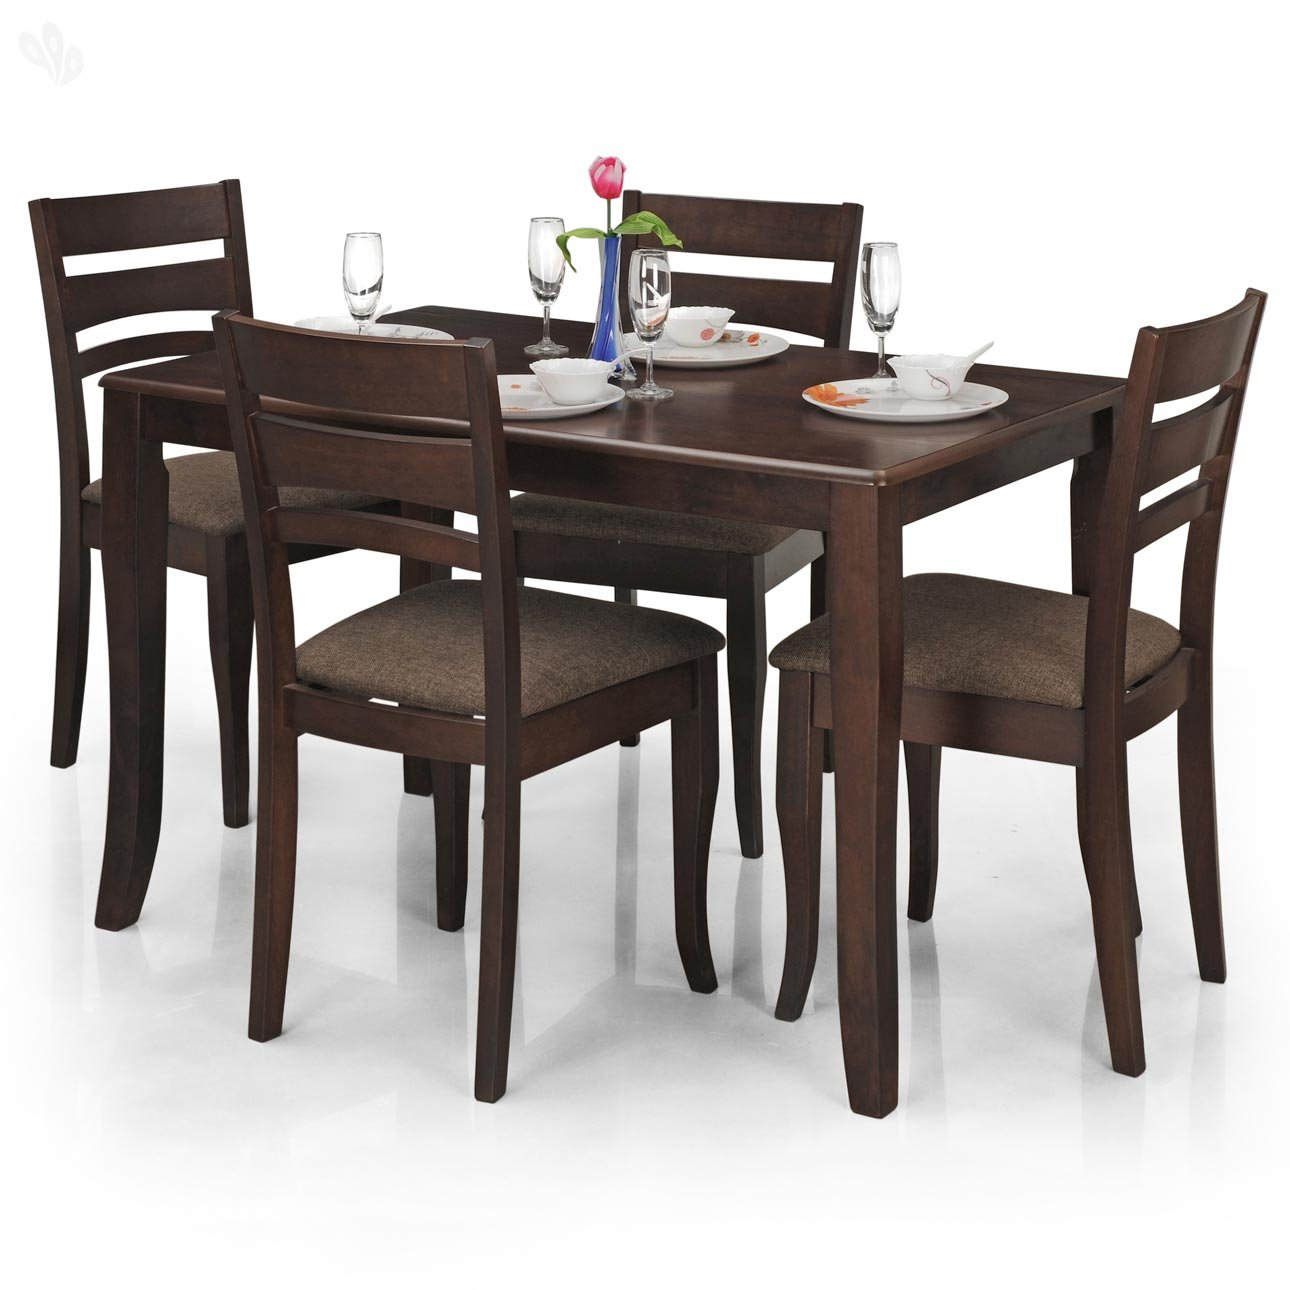 Tables and chairs price list for Dinner table set for 4